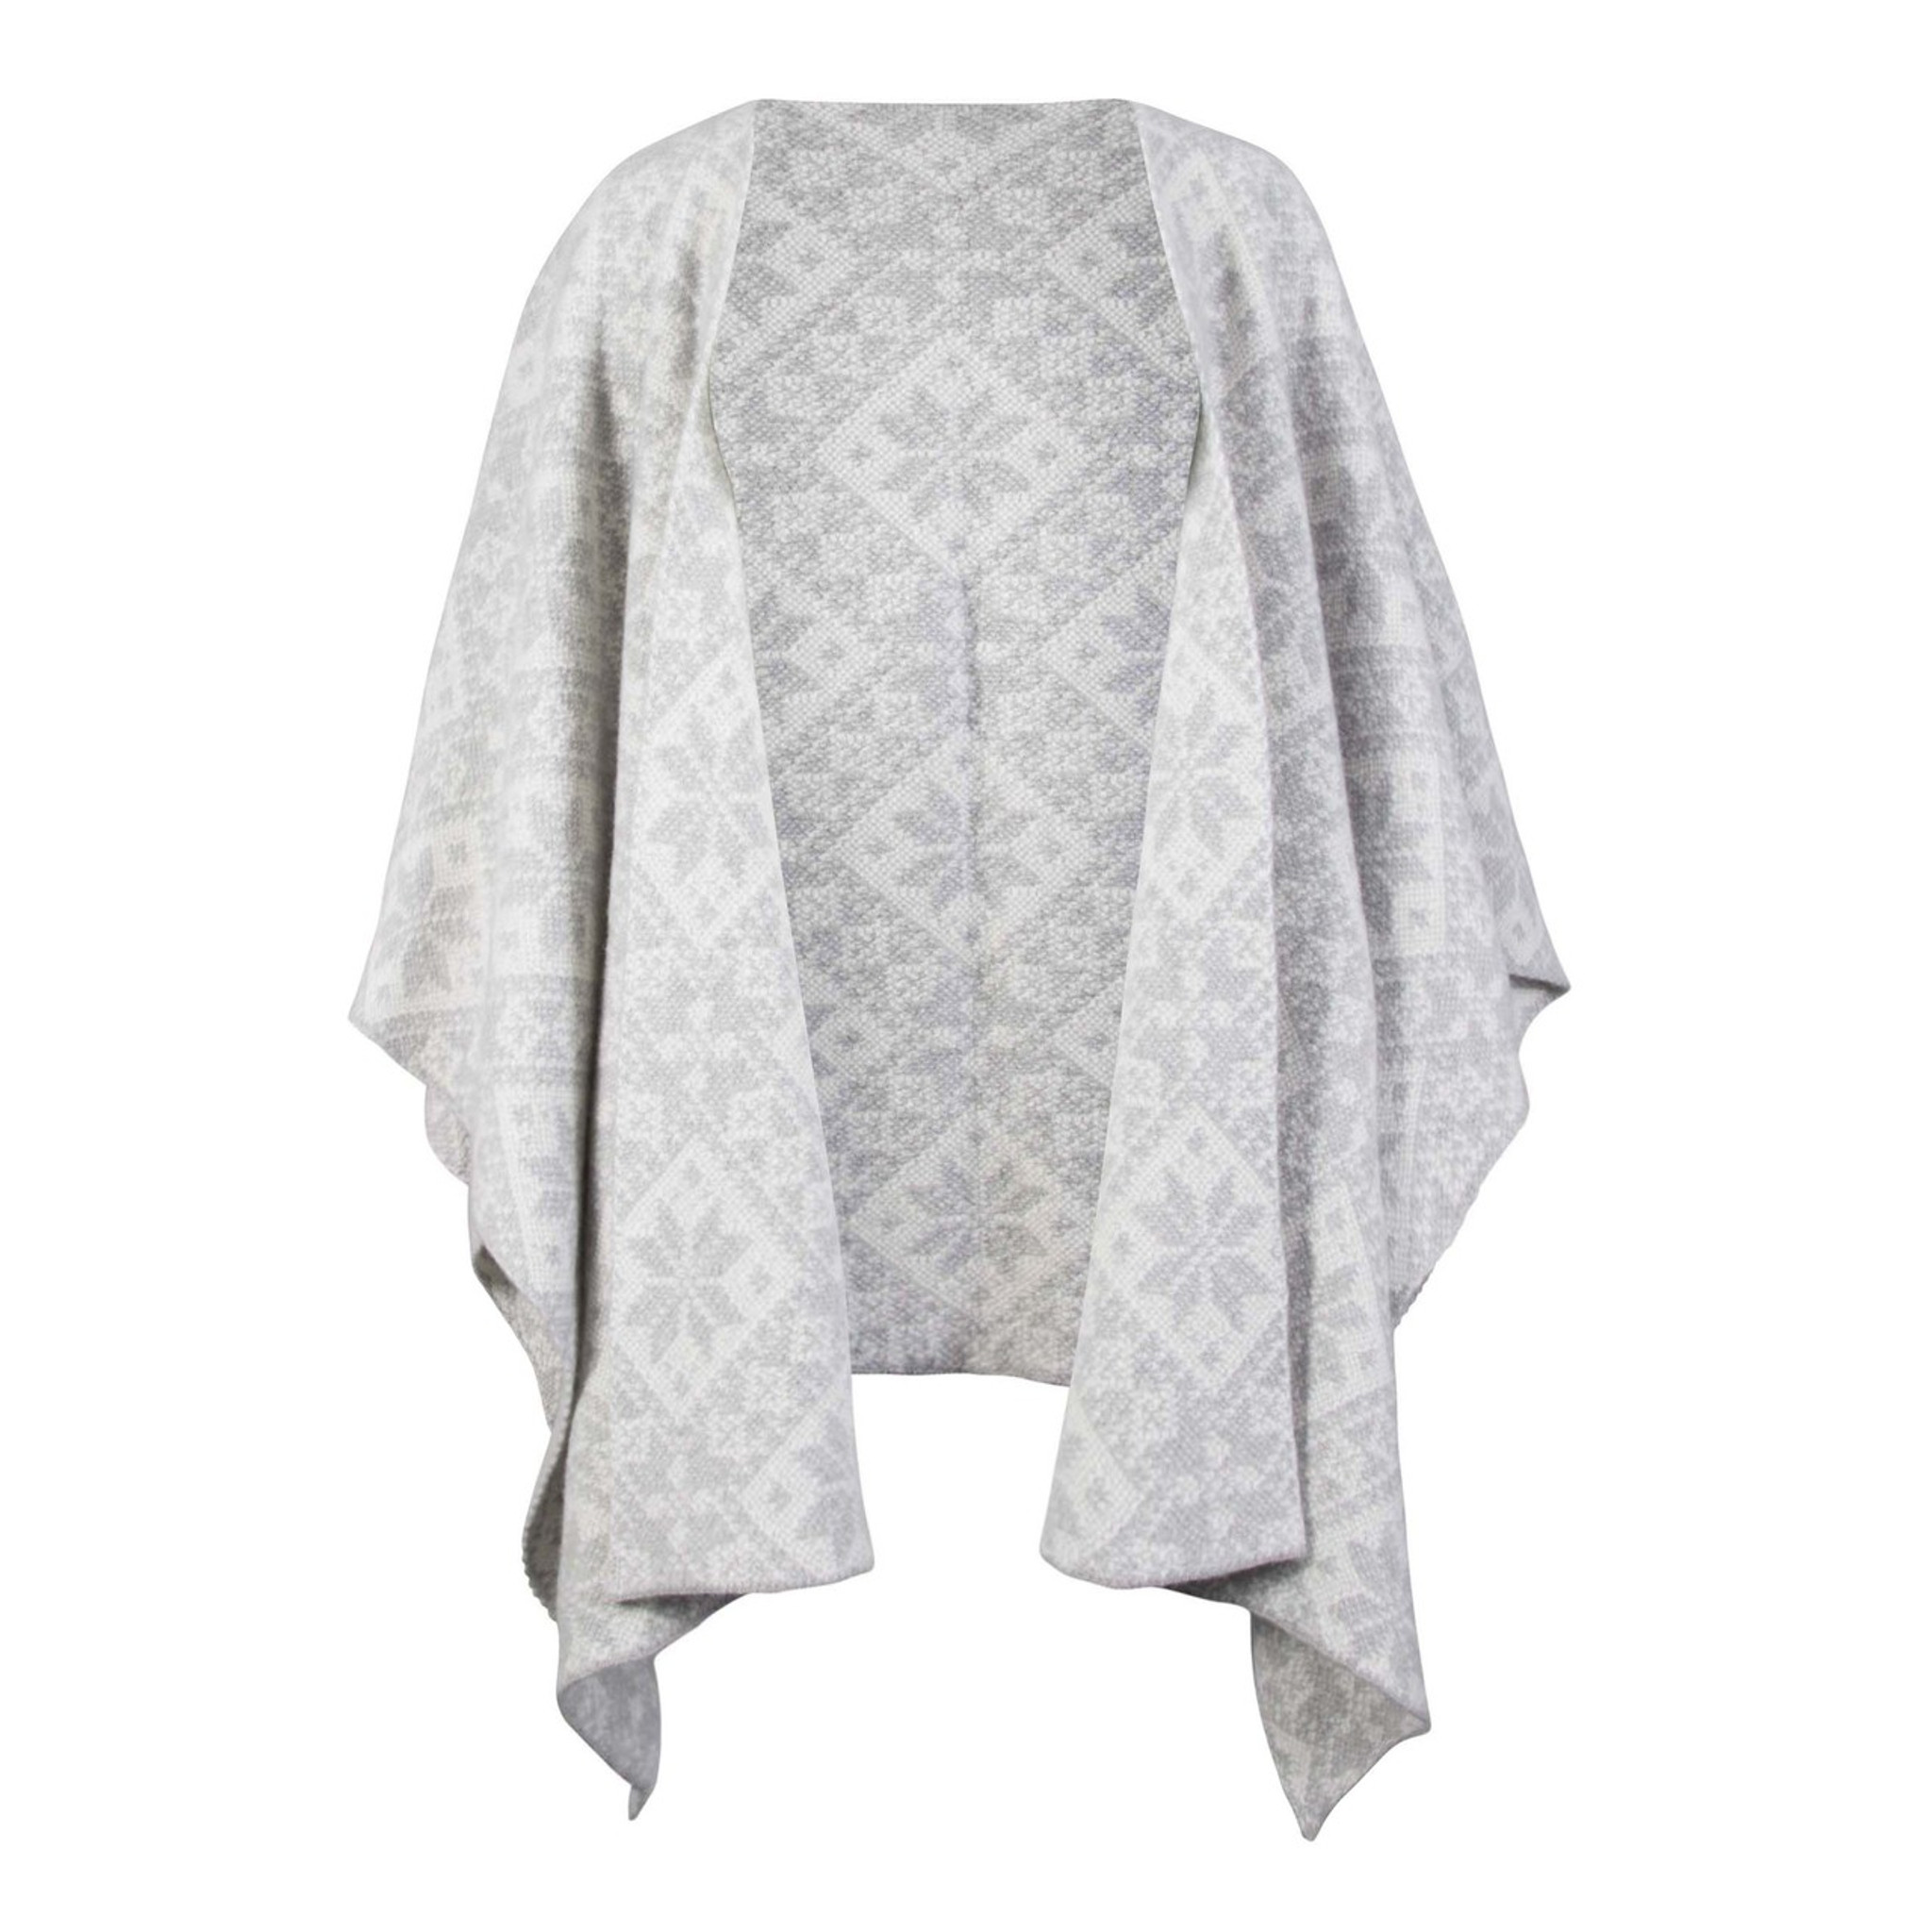 4e57679f4f4dd Dale of Norway Rose Shawl in Light Charcoal